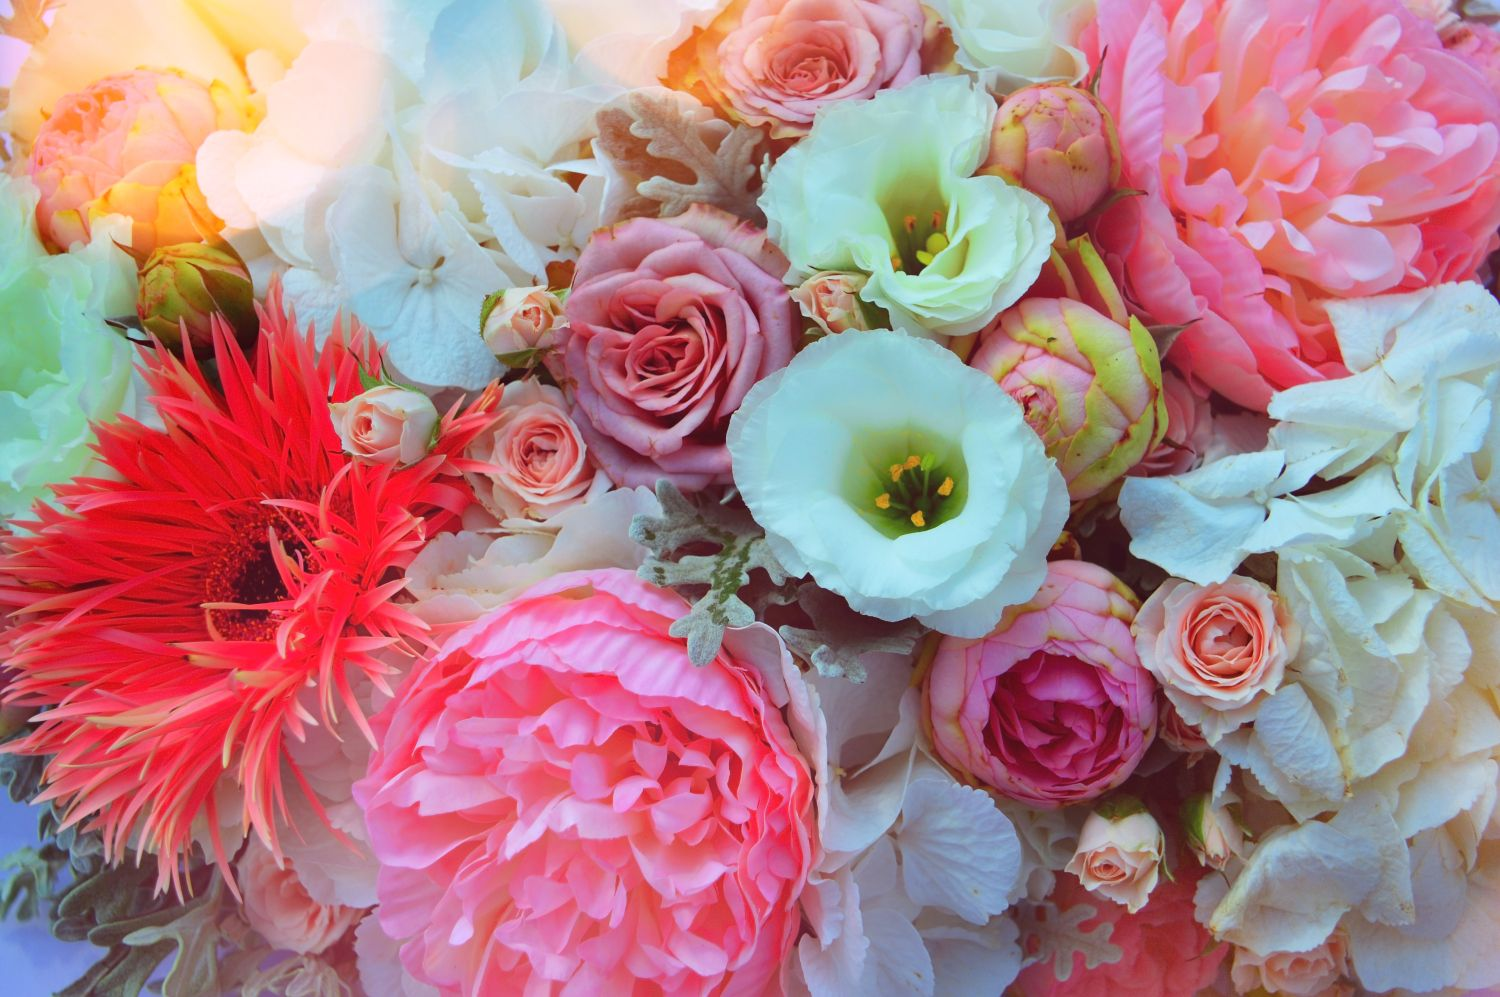 wedding-bouquet-flower-color-beautiful-pink-1447285-pxhere_com.jpg